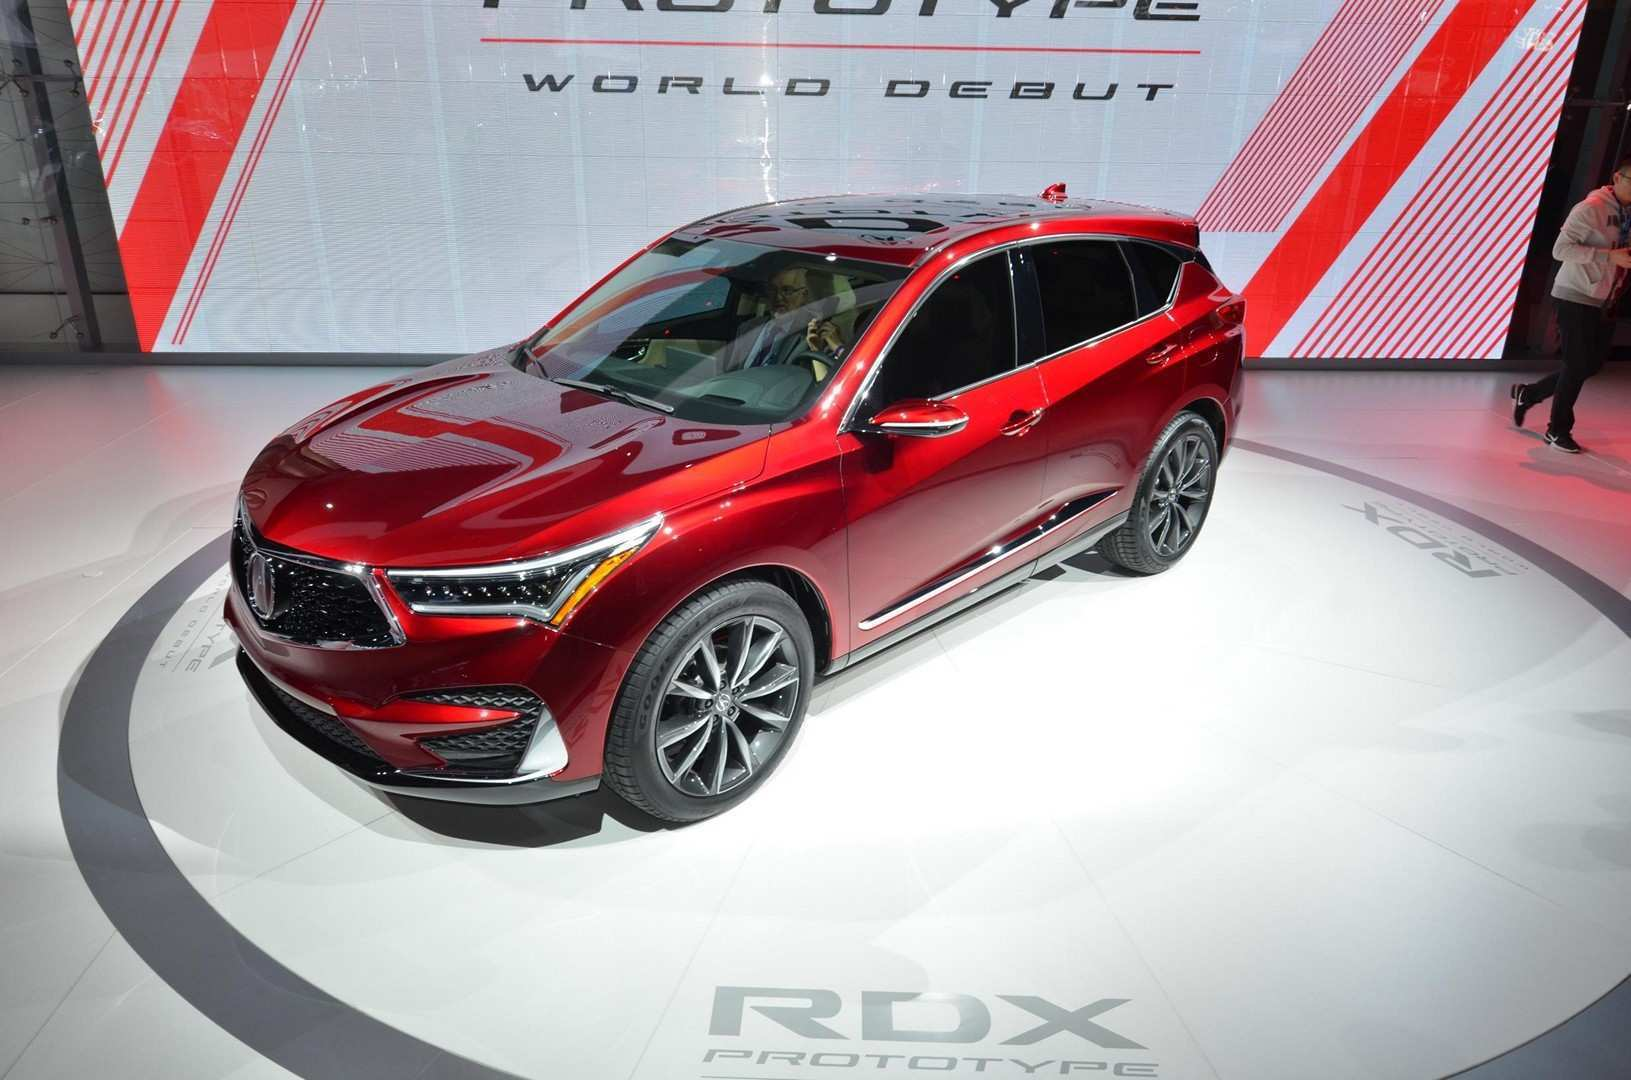 88 Gallery of 2019 Acura Rdx Concept Performance for 2019 Acura Rdx Concept